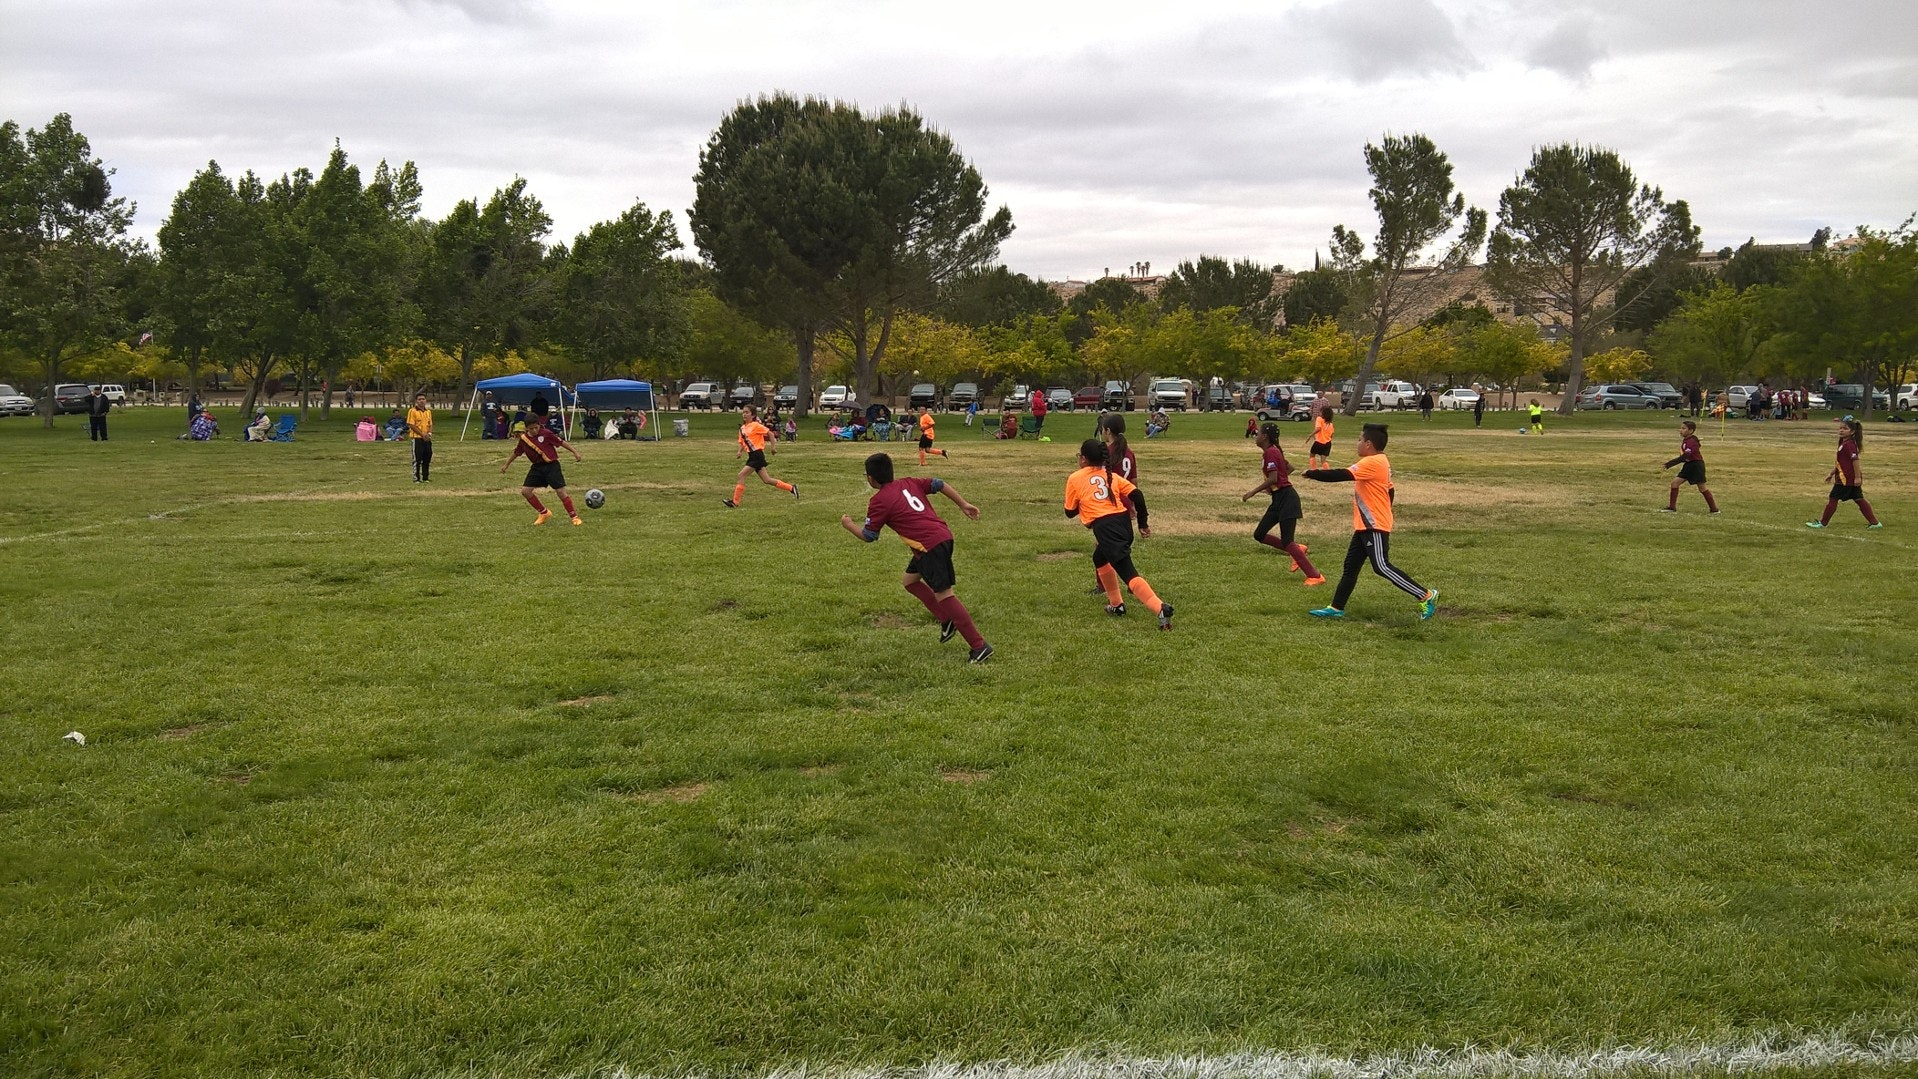 Kids playing soccer at the soccer fields located at Hesperia Lake Park